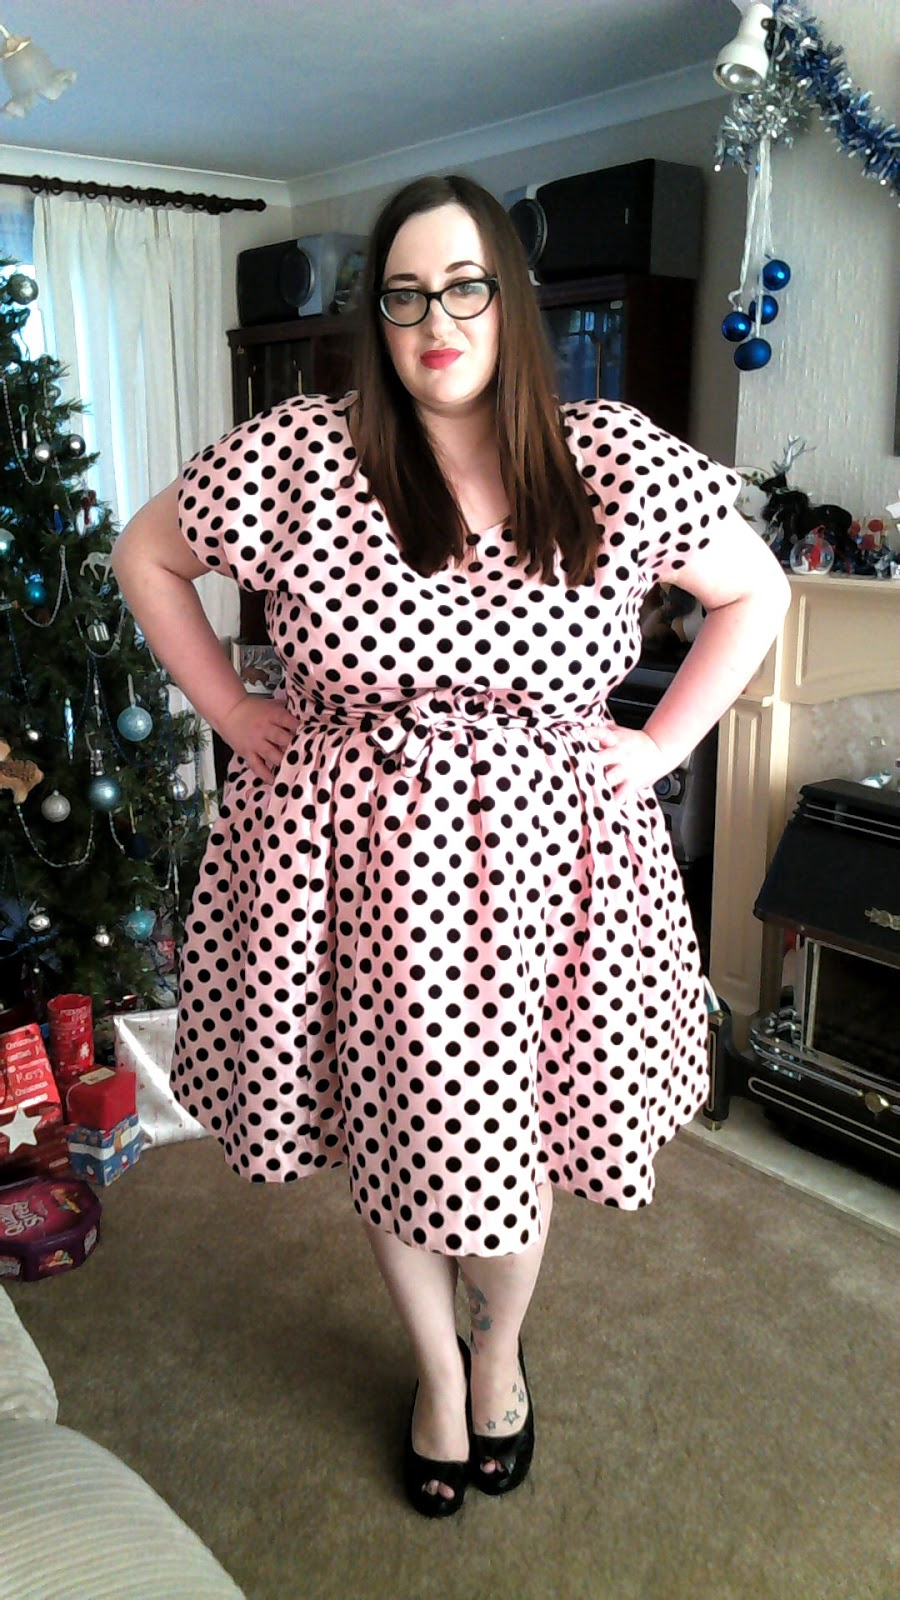 12 days of christmas dresses #10 - does my blog make me look fat?